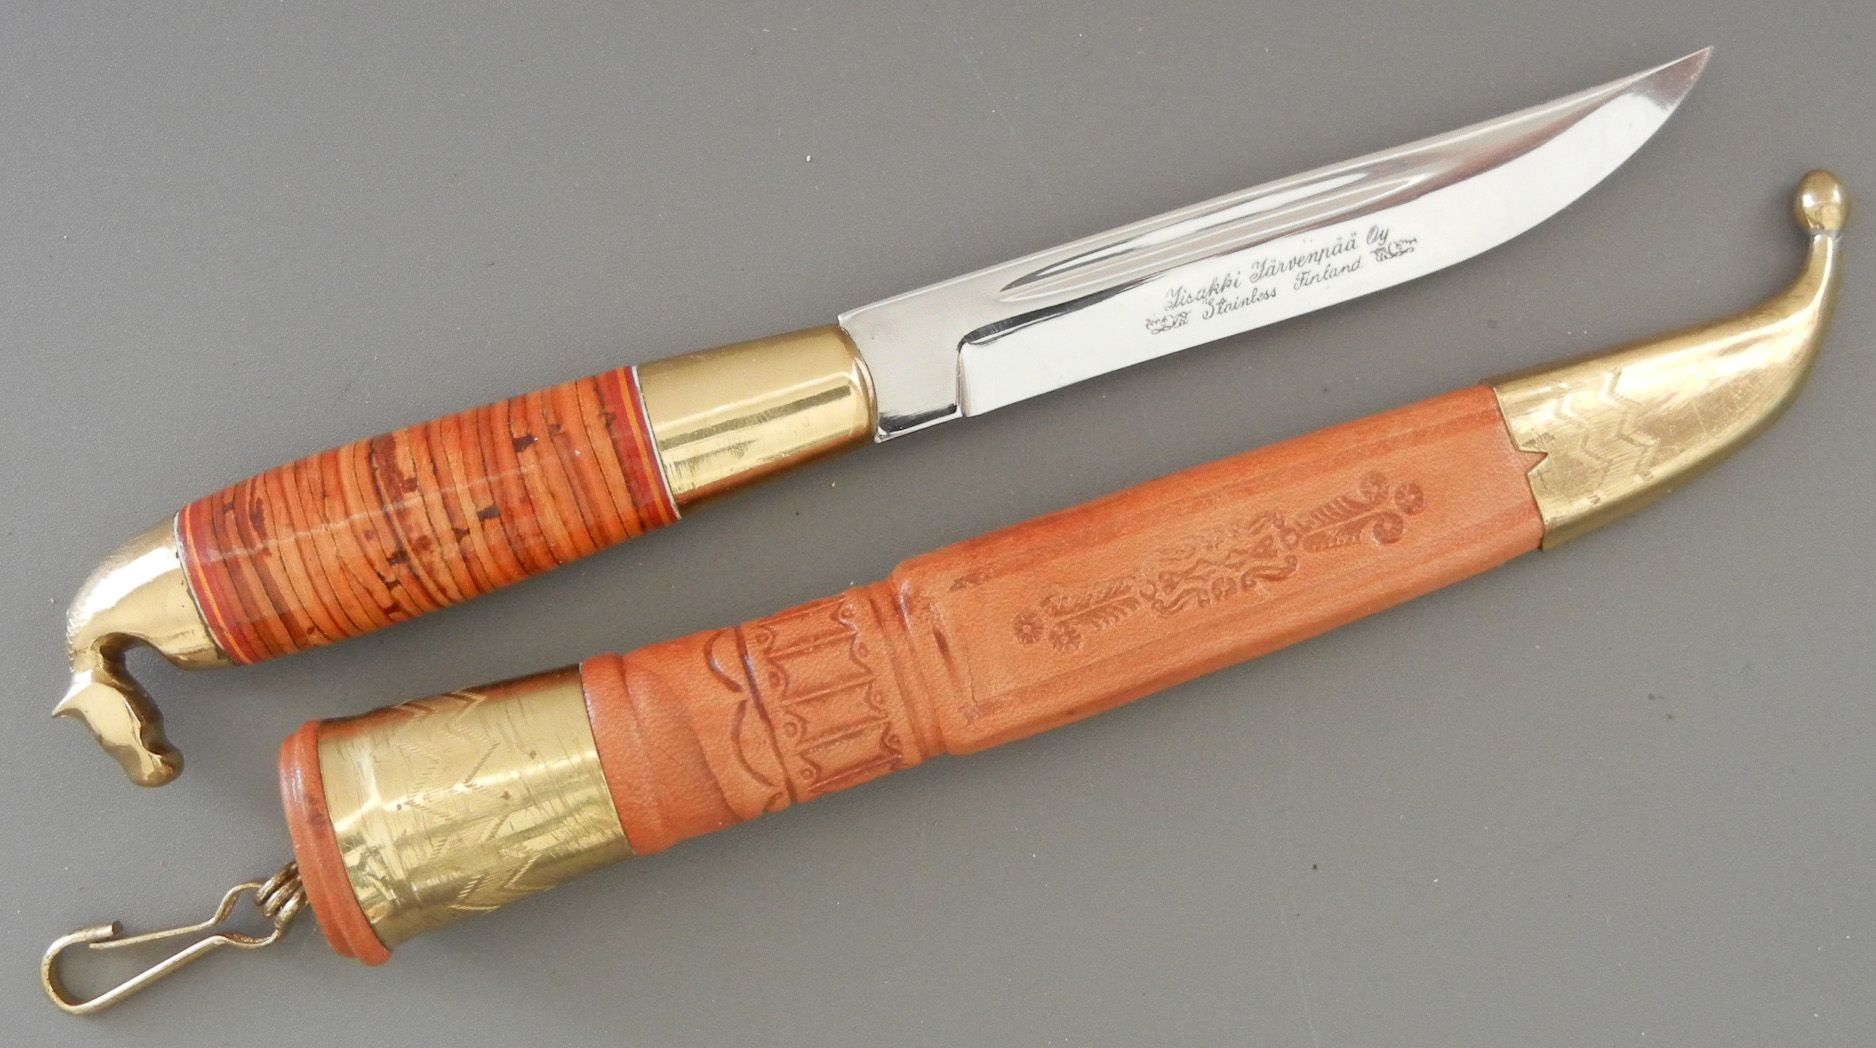 Iisakki Järvenpää puukko with solid brass horsehead pommel. Stacked birch bark handle. This is a traditional Kauhava style puukko.